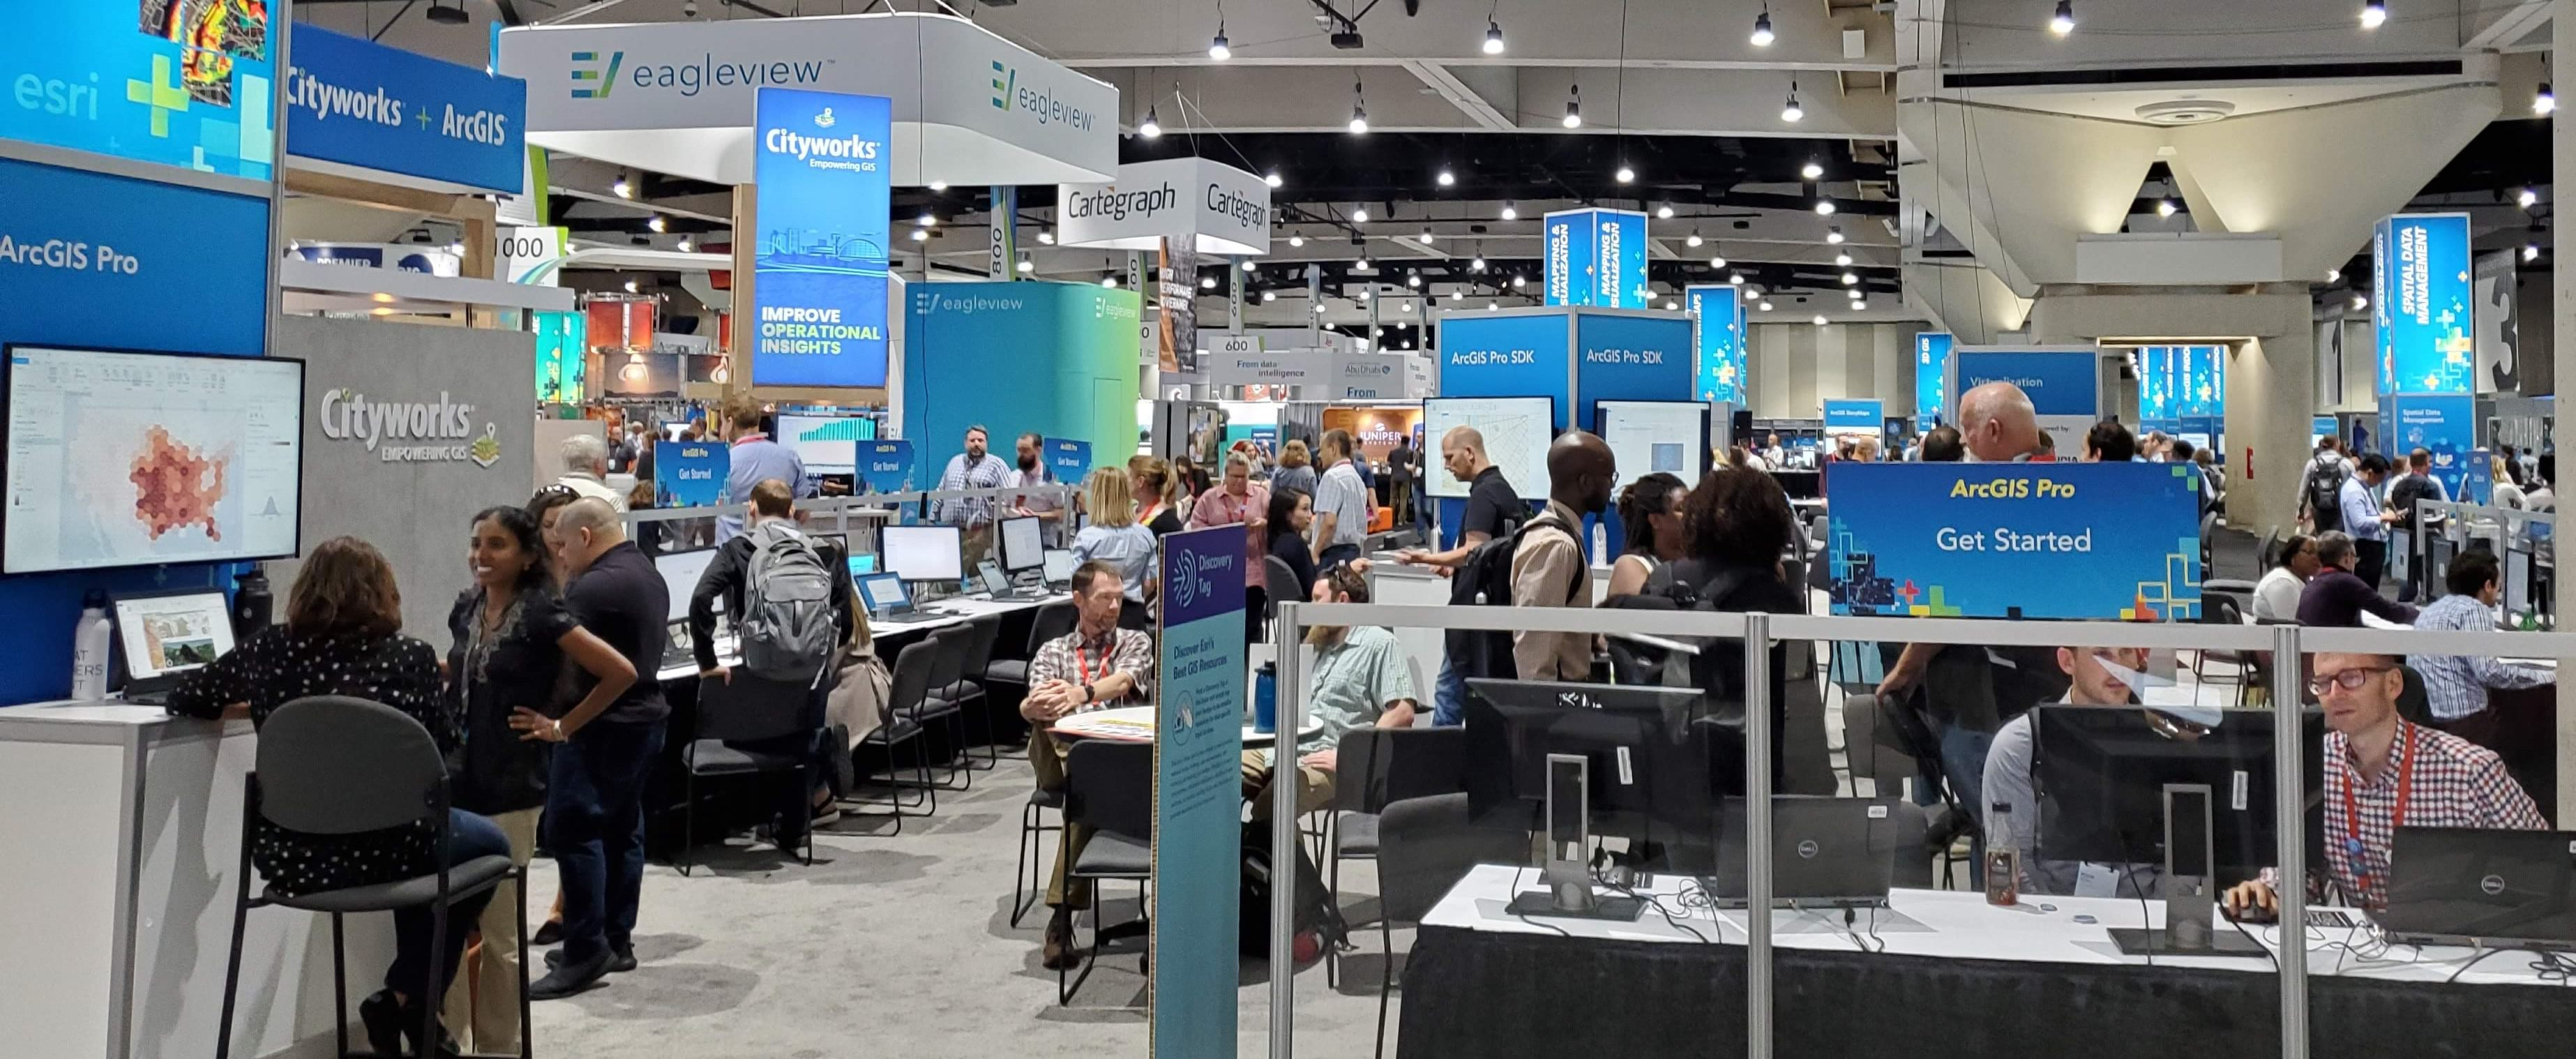 ArcGIS Pro Area at the 2019 Esri User Conference